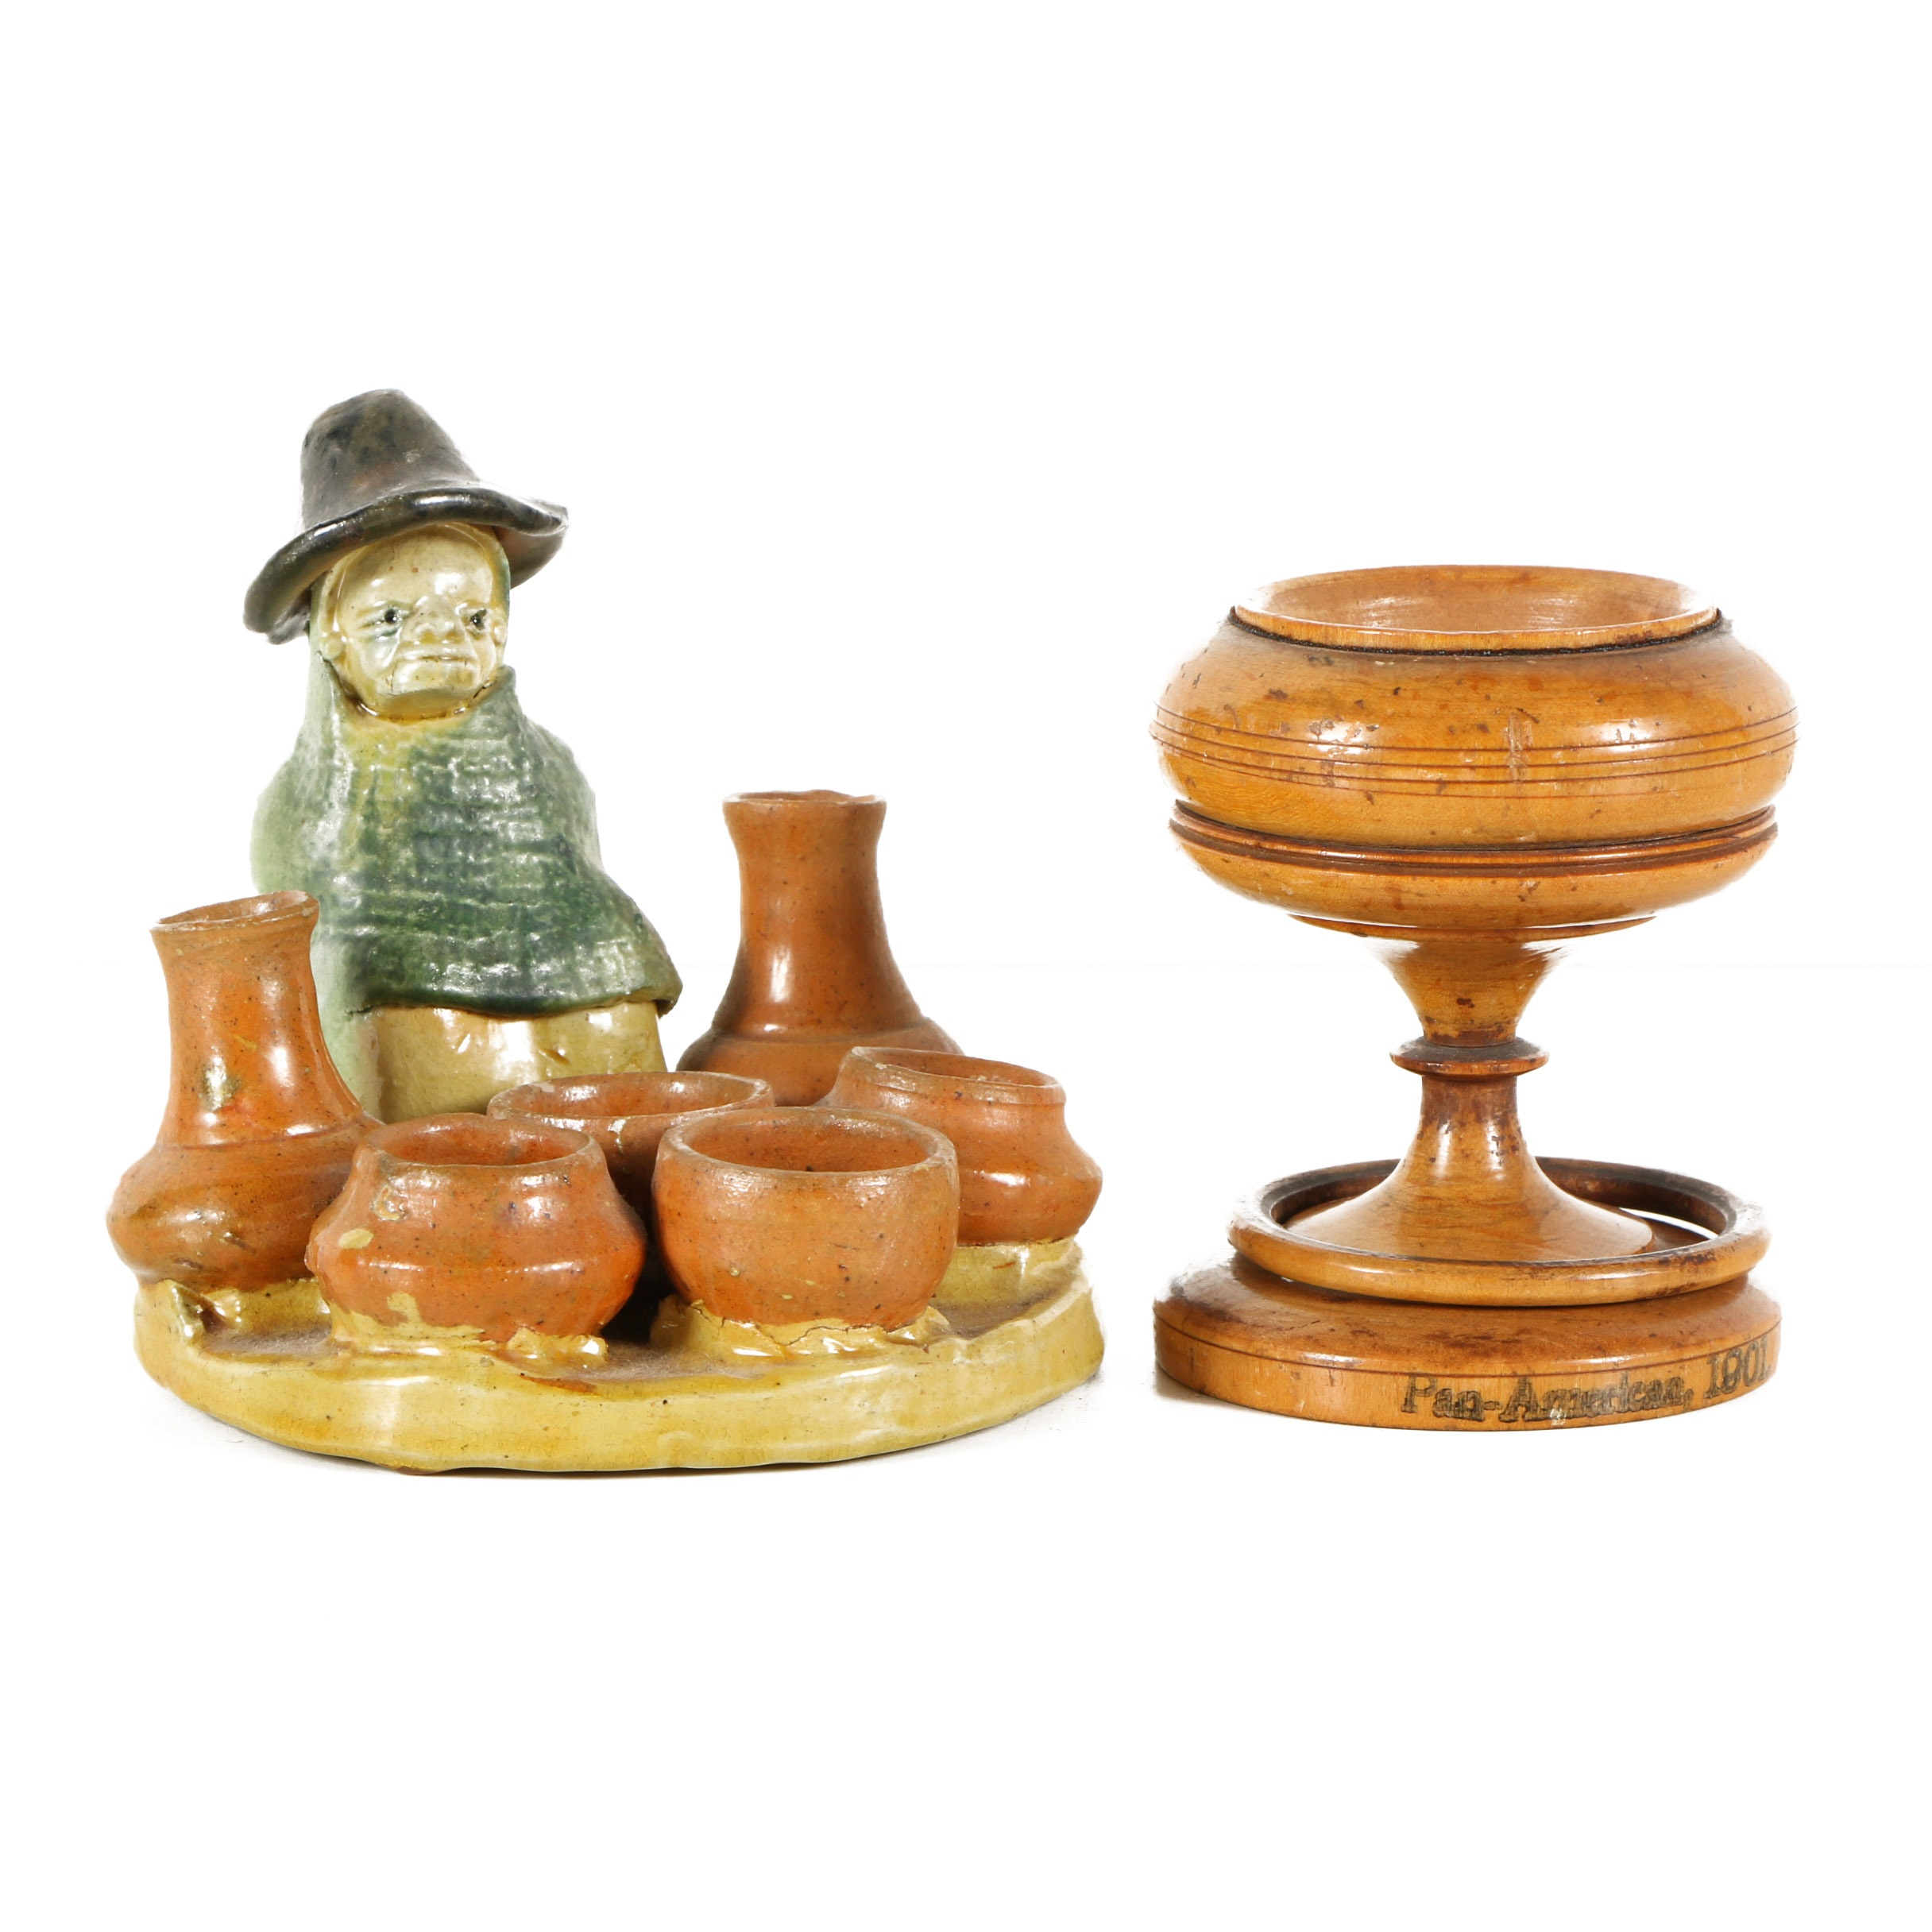 Ceramic Figure and Wooden Cup